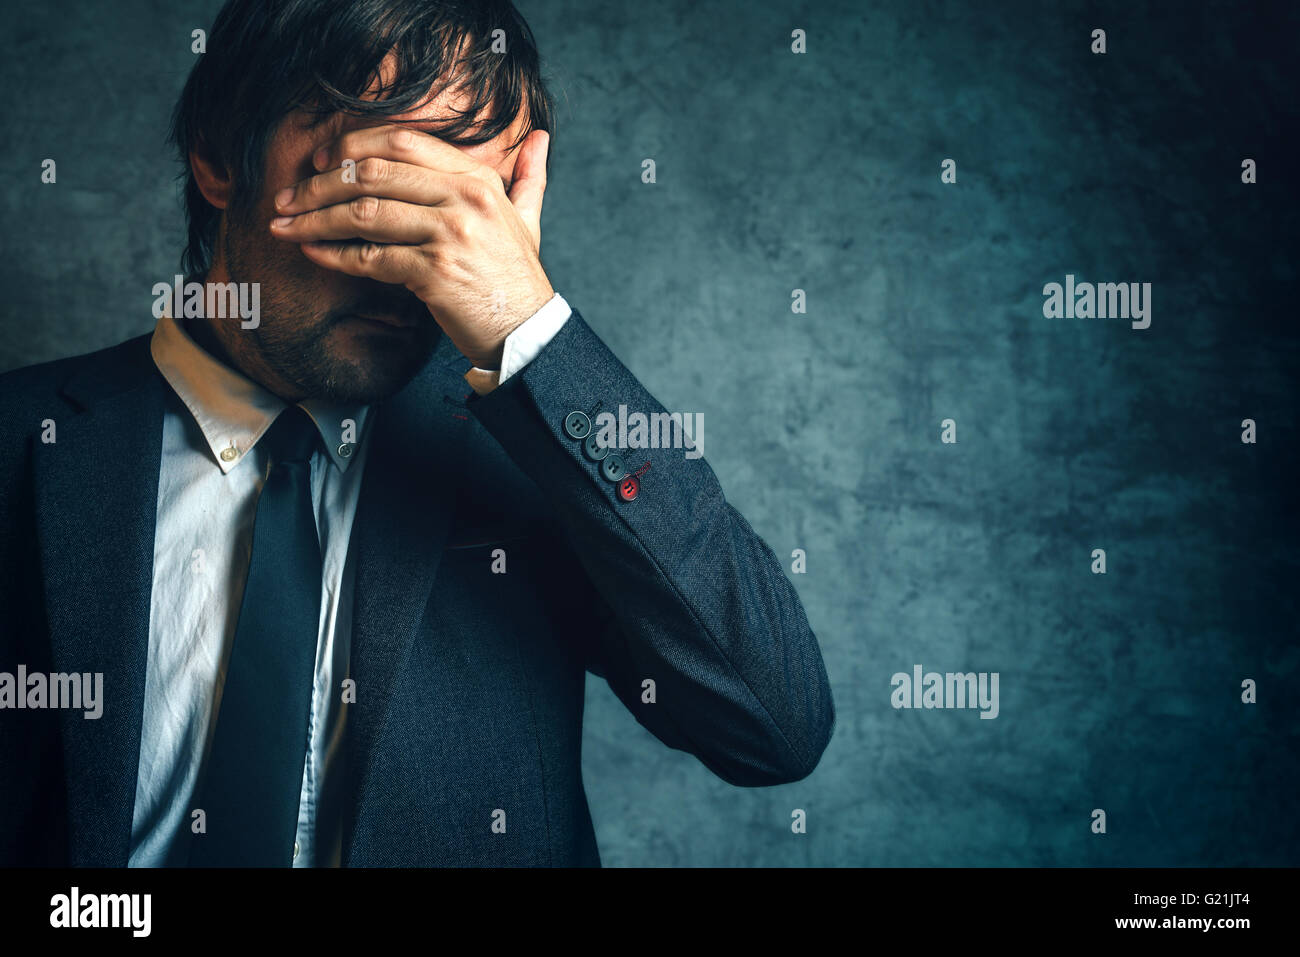 Unhappy businessman under stress after business project failure, hand covering eyes. - Stock Image